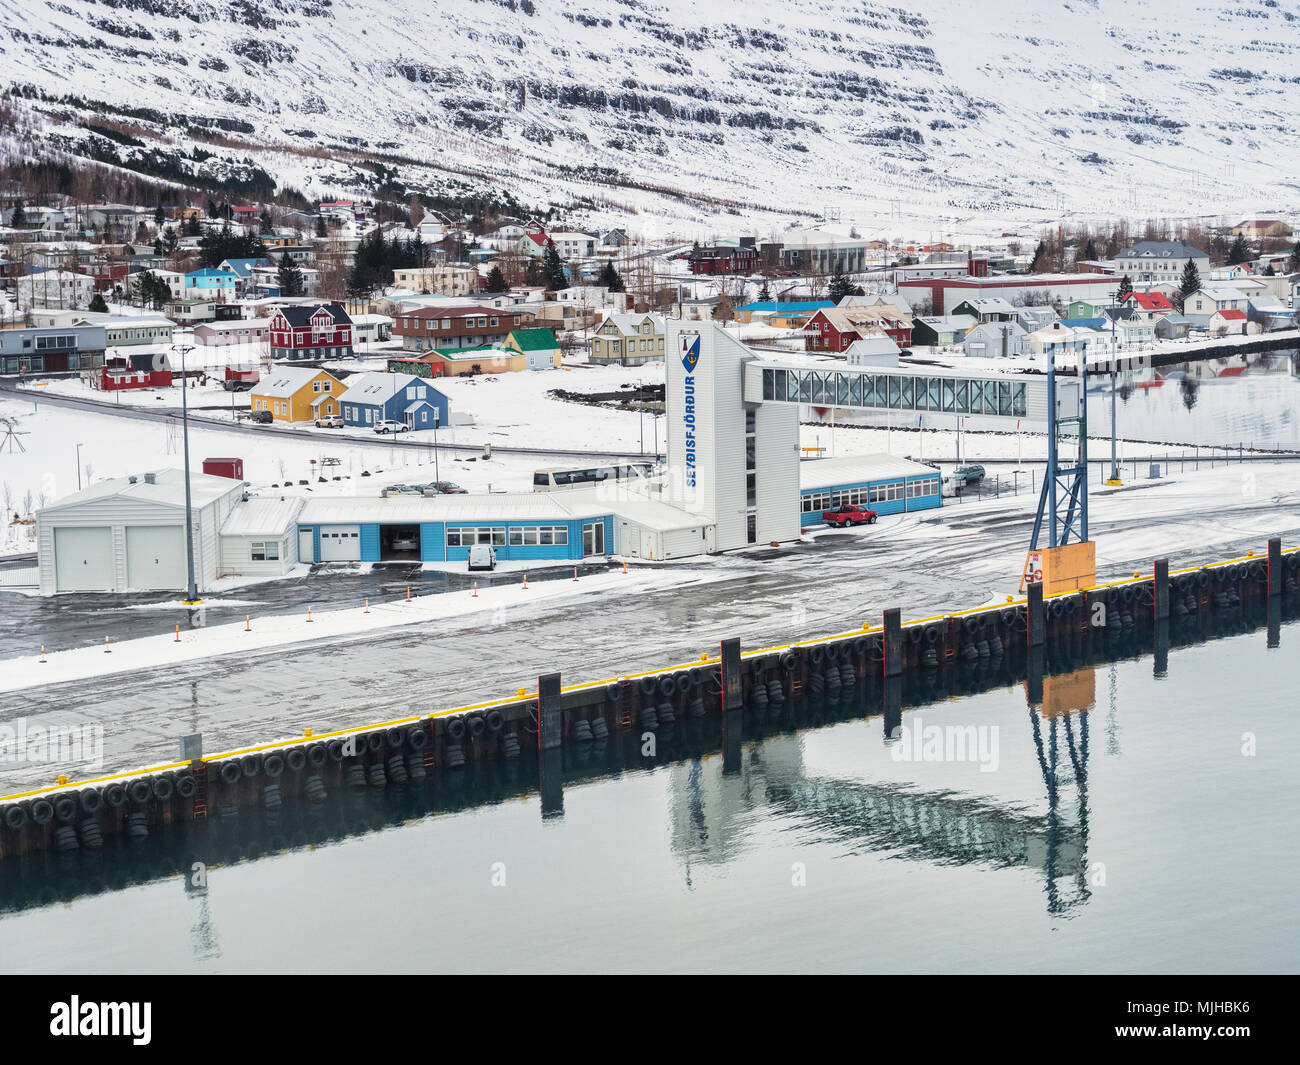 10 April 2018: Seydisfjordur, Iceland - Icelandic port in the eastern fiords. - Stock Image